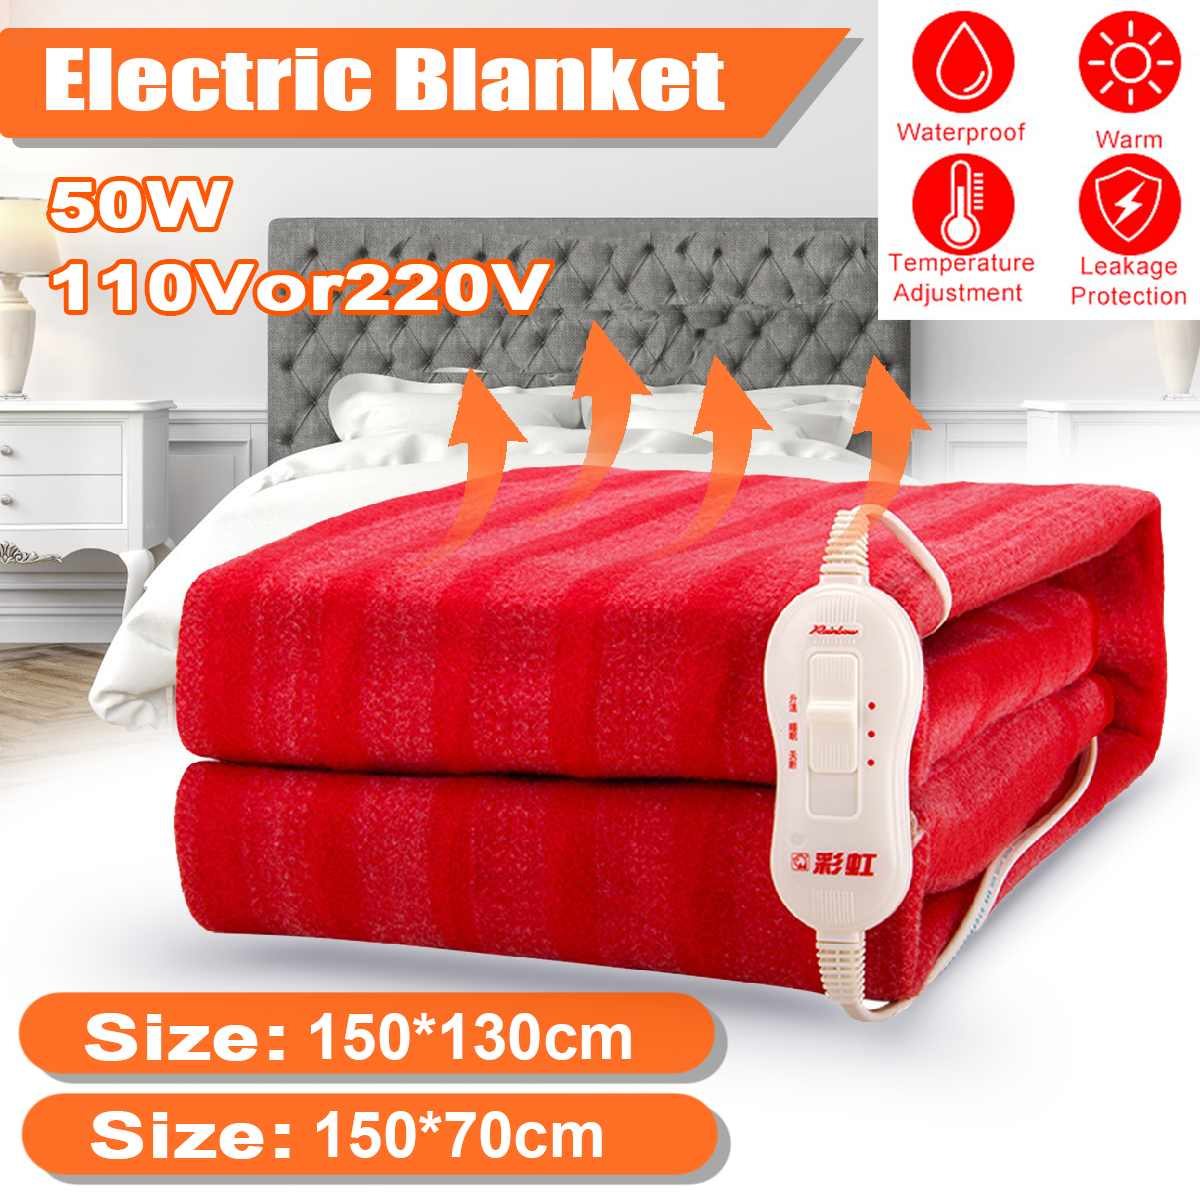 Washable Electric Blanket 110V/220V Double Single Waterproof Temperature Adjustable Warm Heaters Bed USB Heating Pad Heated Mat